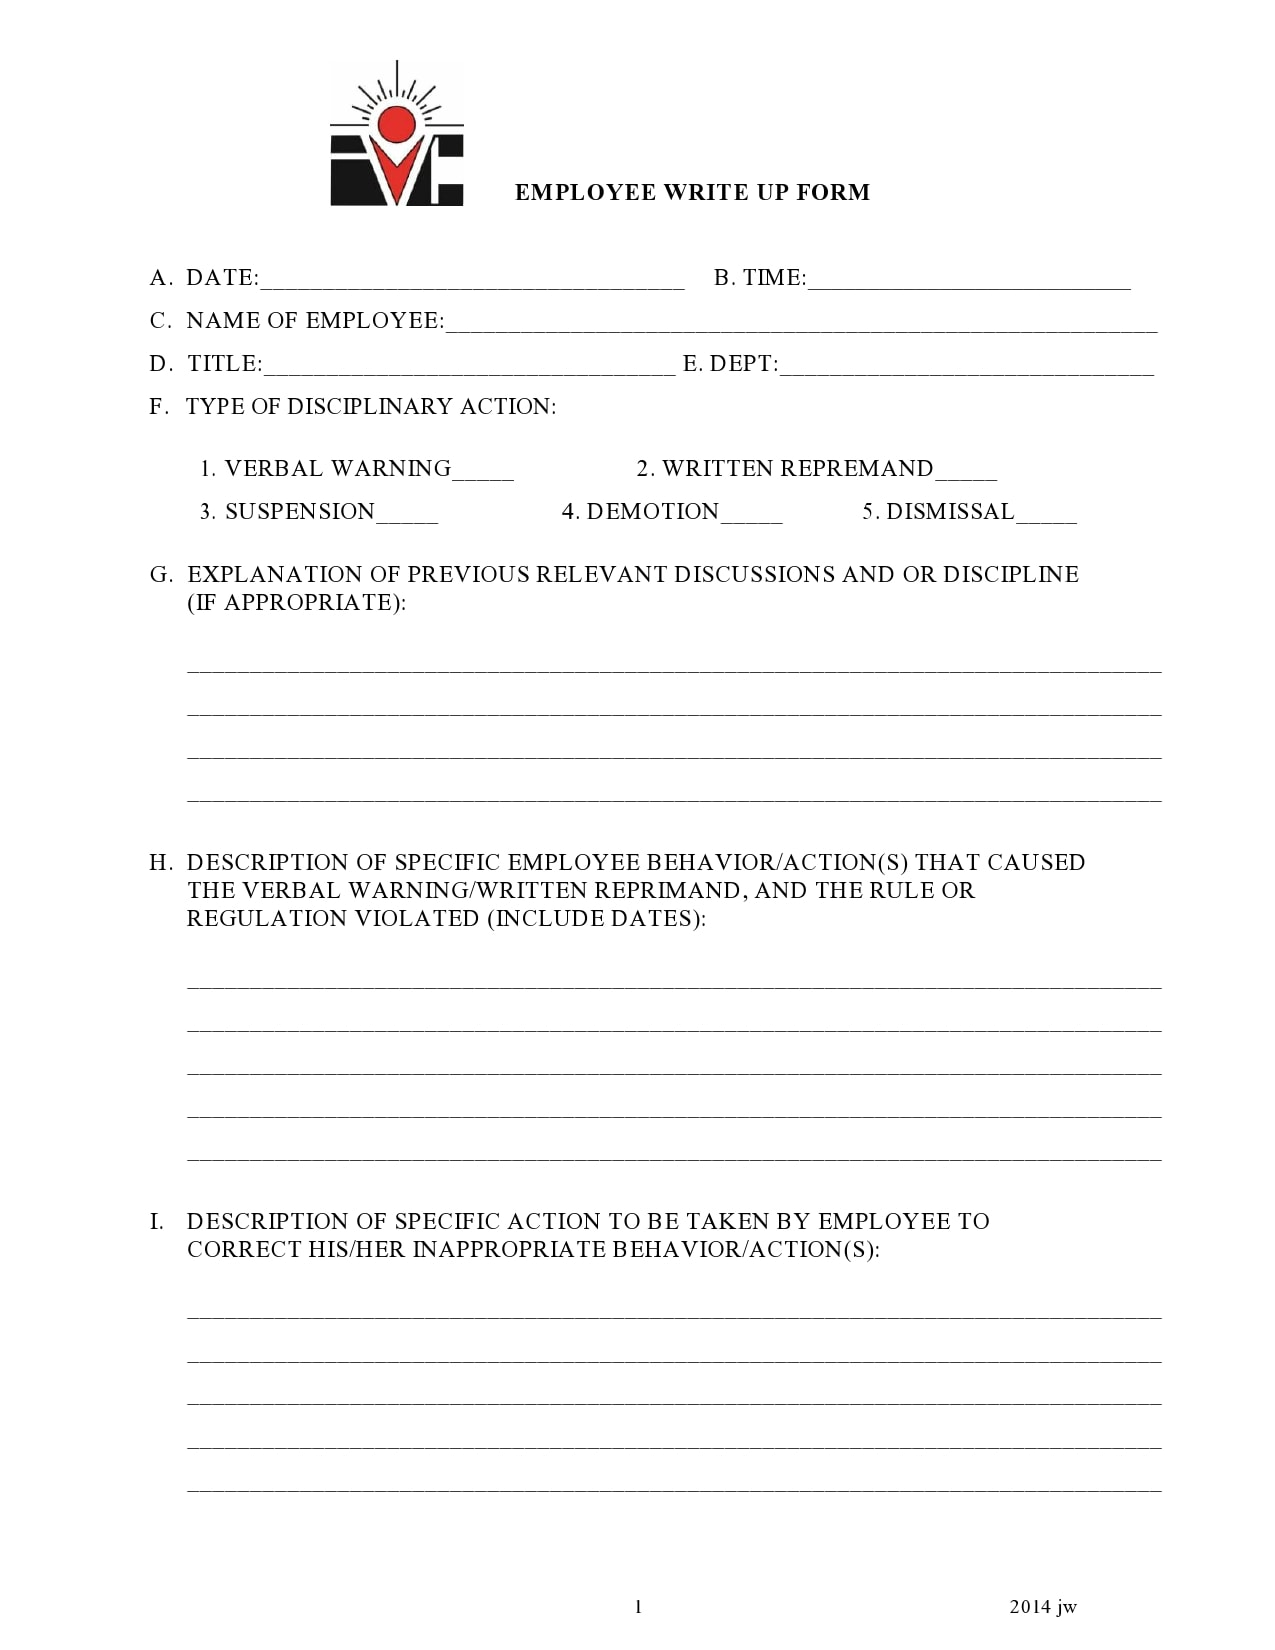 employee write up form 17